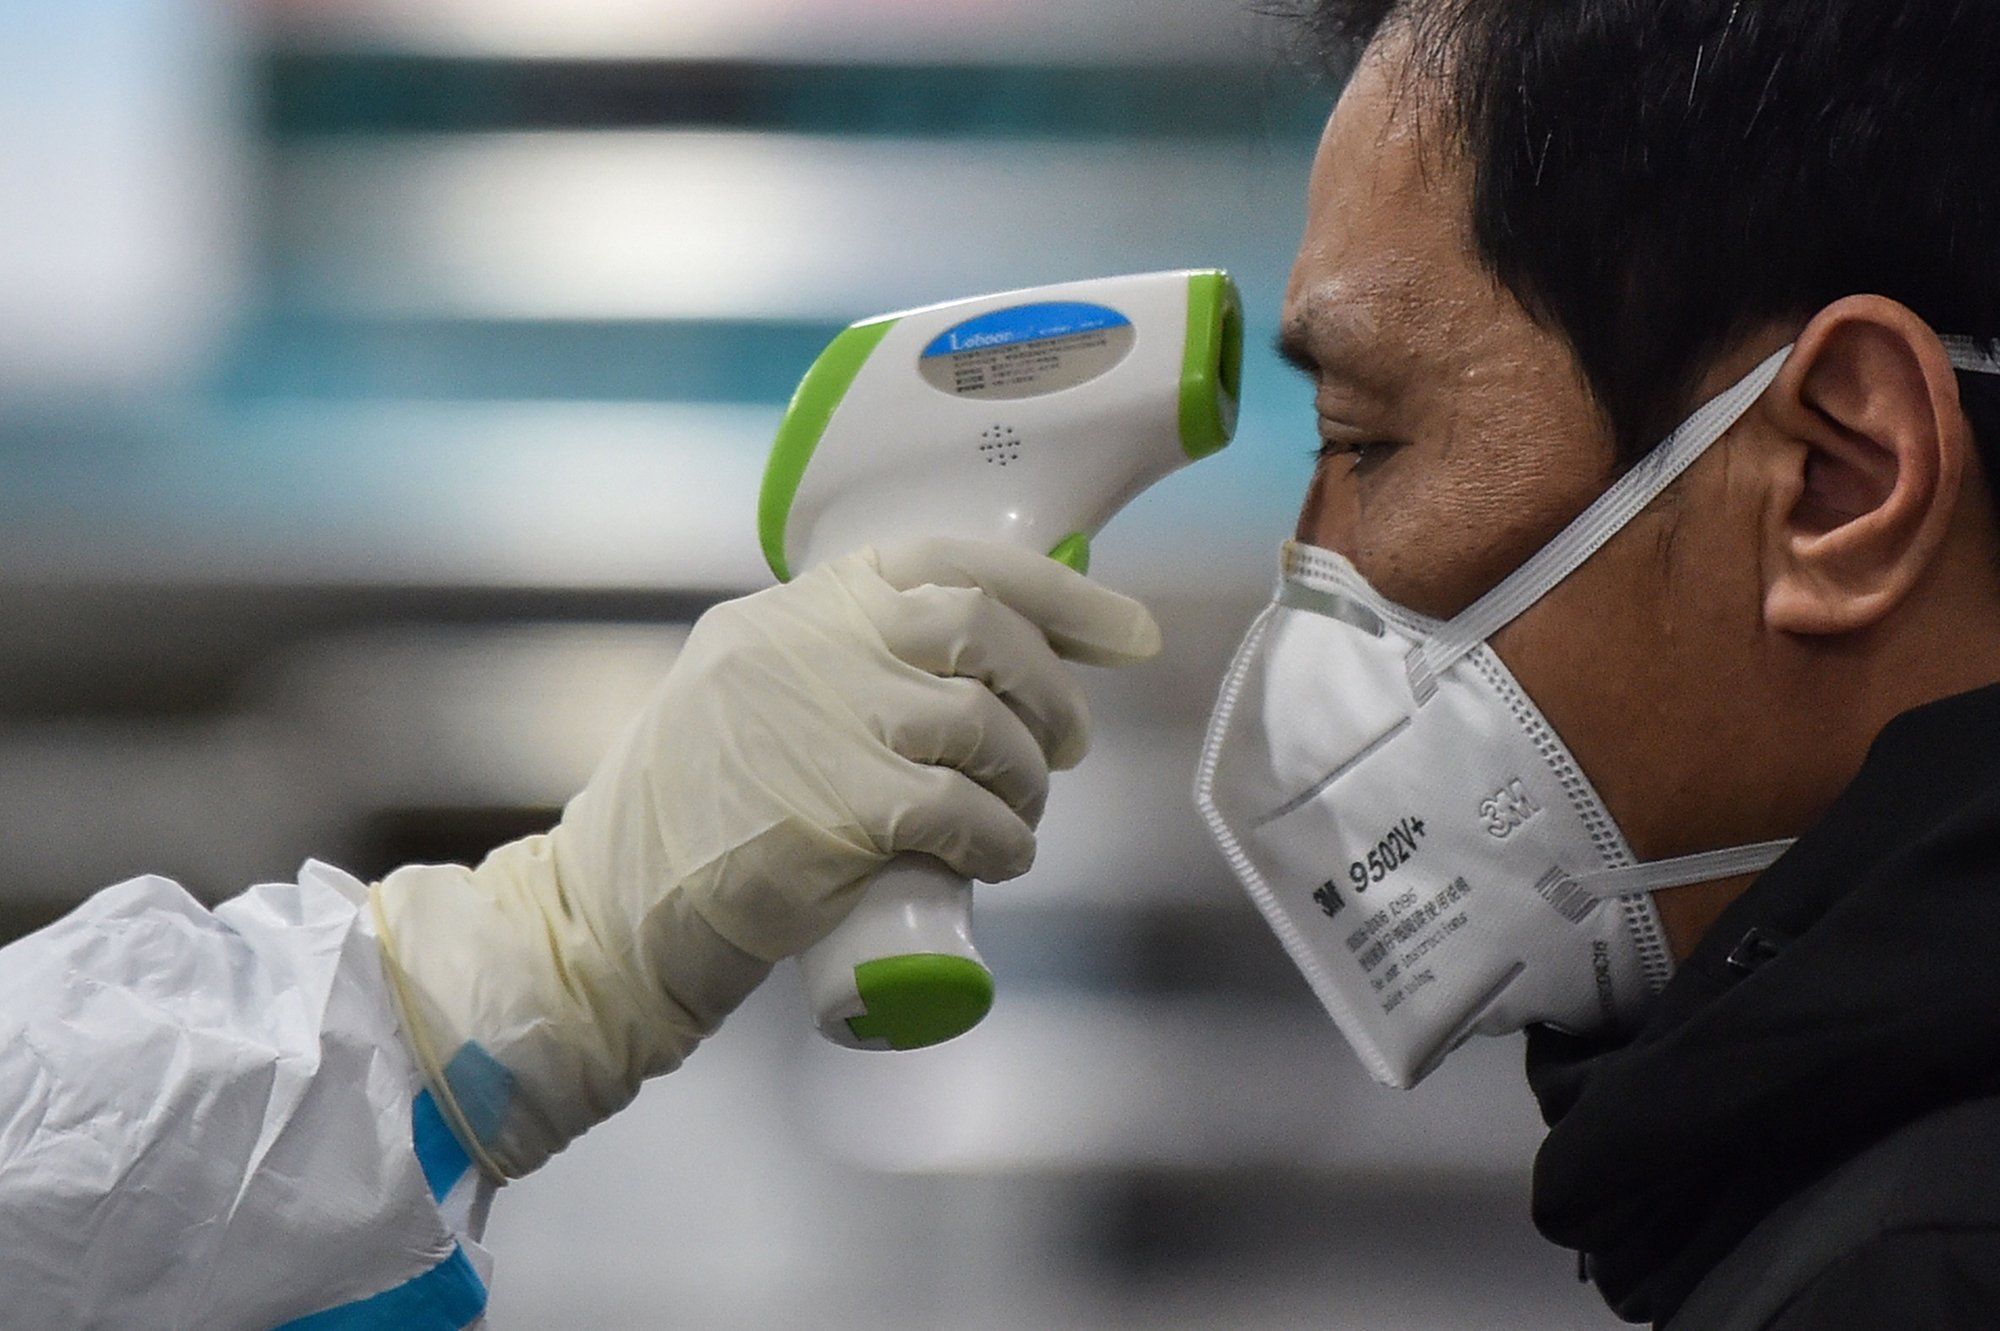 Evacuees from Wuhan are on a plane to the United States. Should they be quarantined?